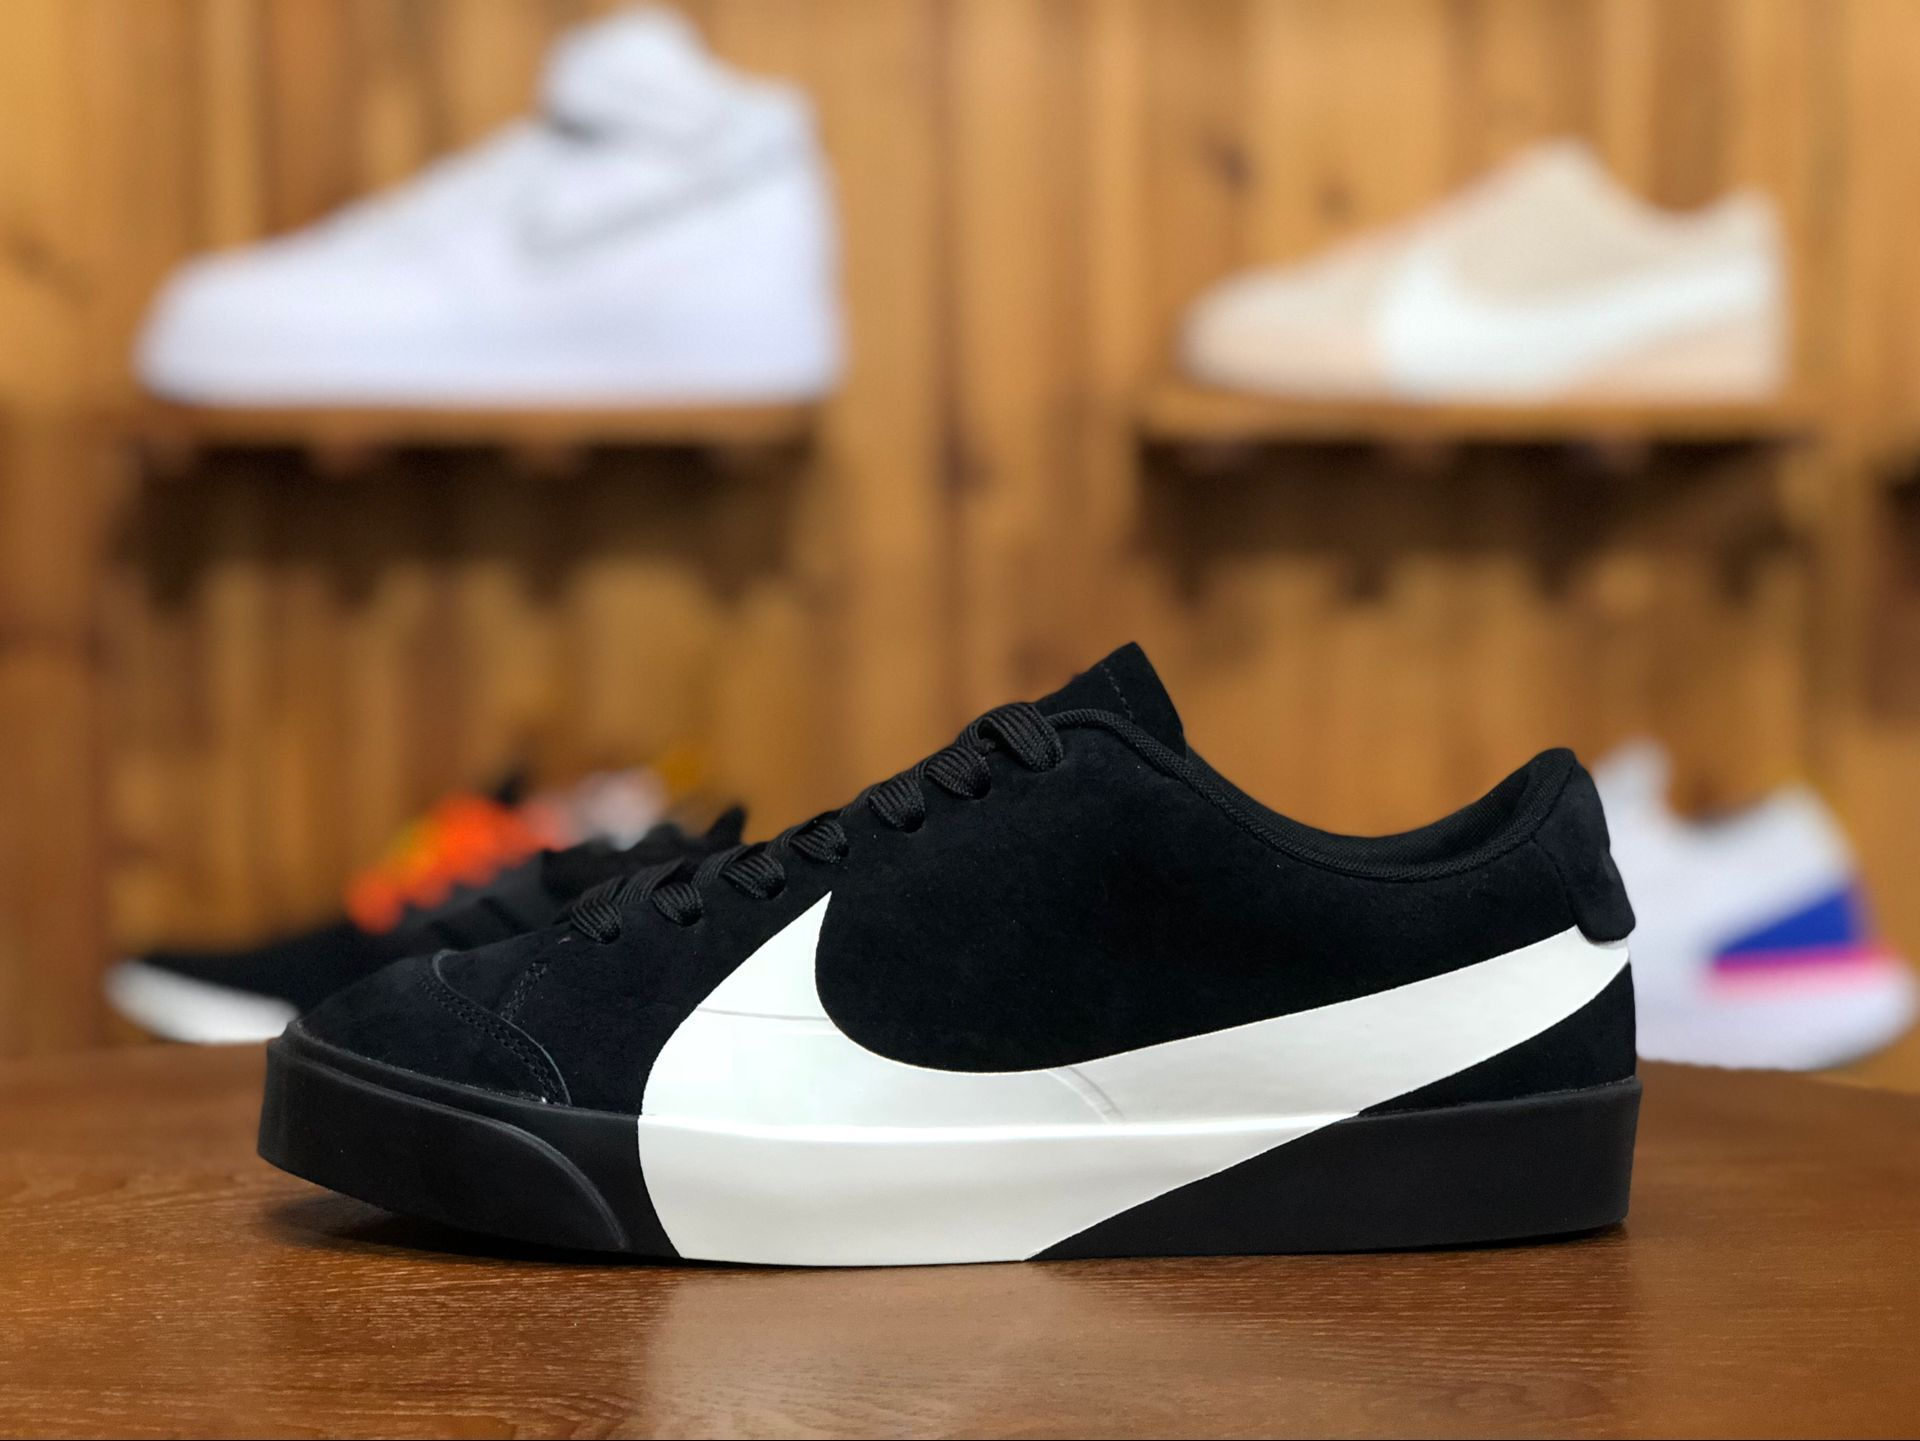 This Nike Blazer City Low Xs Black White Features An Abnormal Adornment A Giant Swoosh On The Midfoot That R Black Nike Shoes White Shoes Men White Nike Shoes